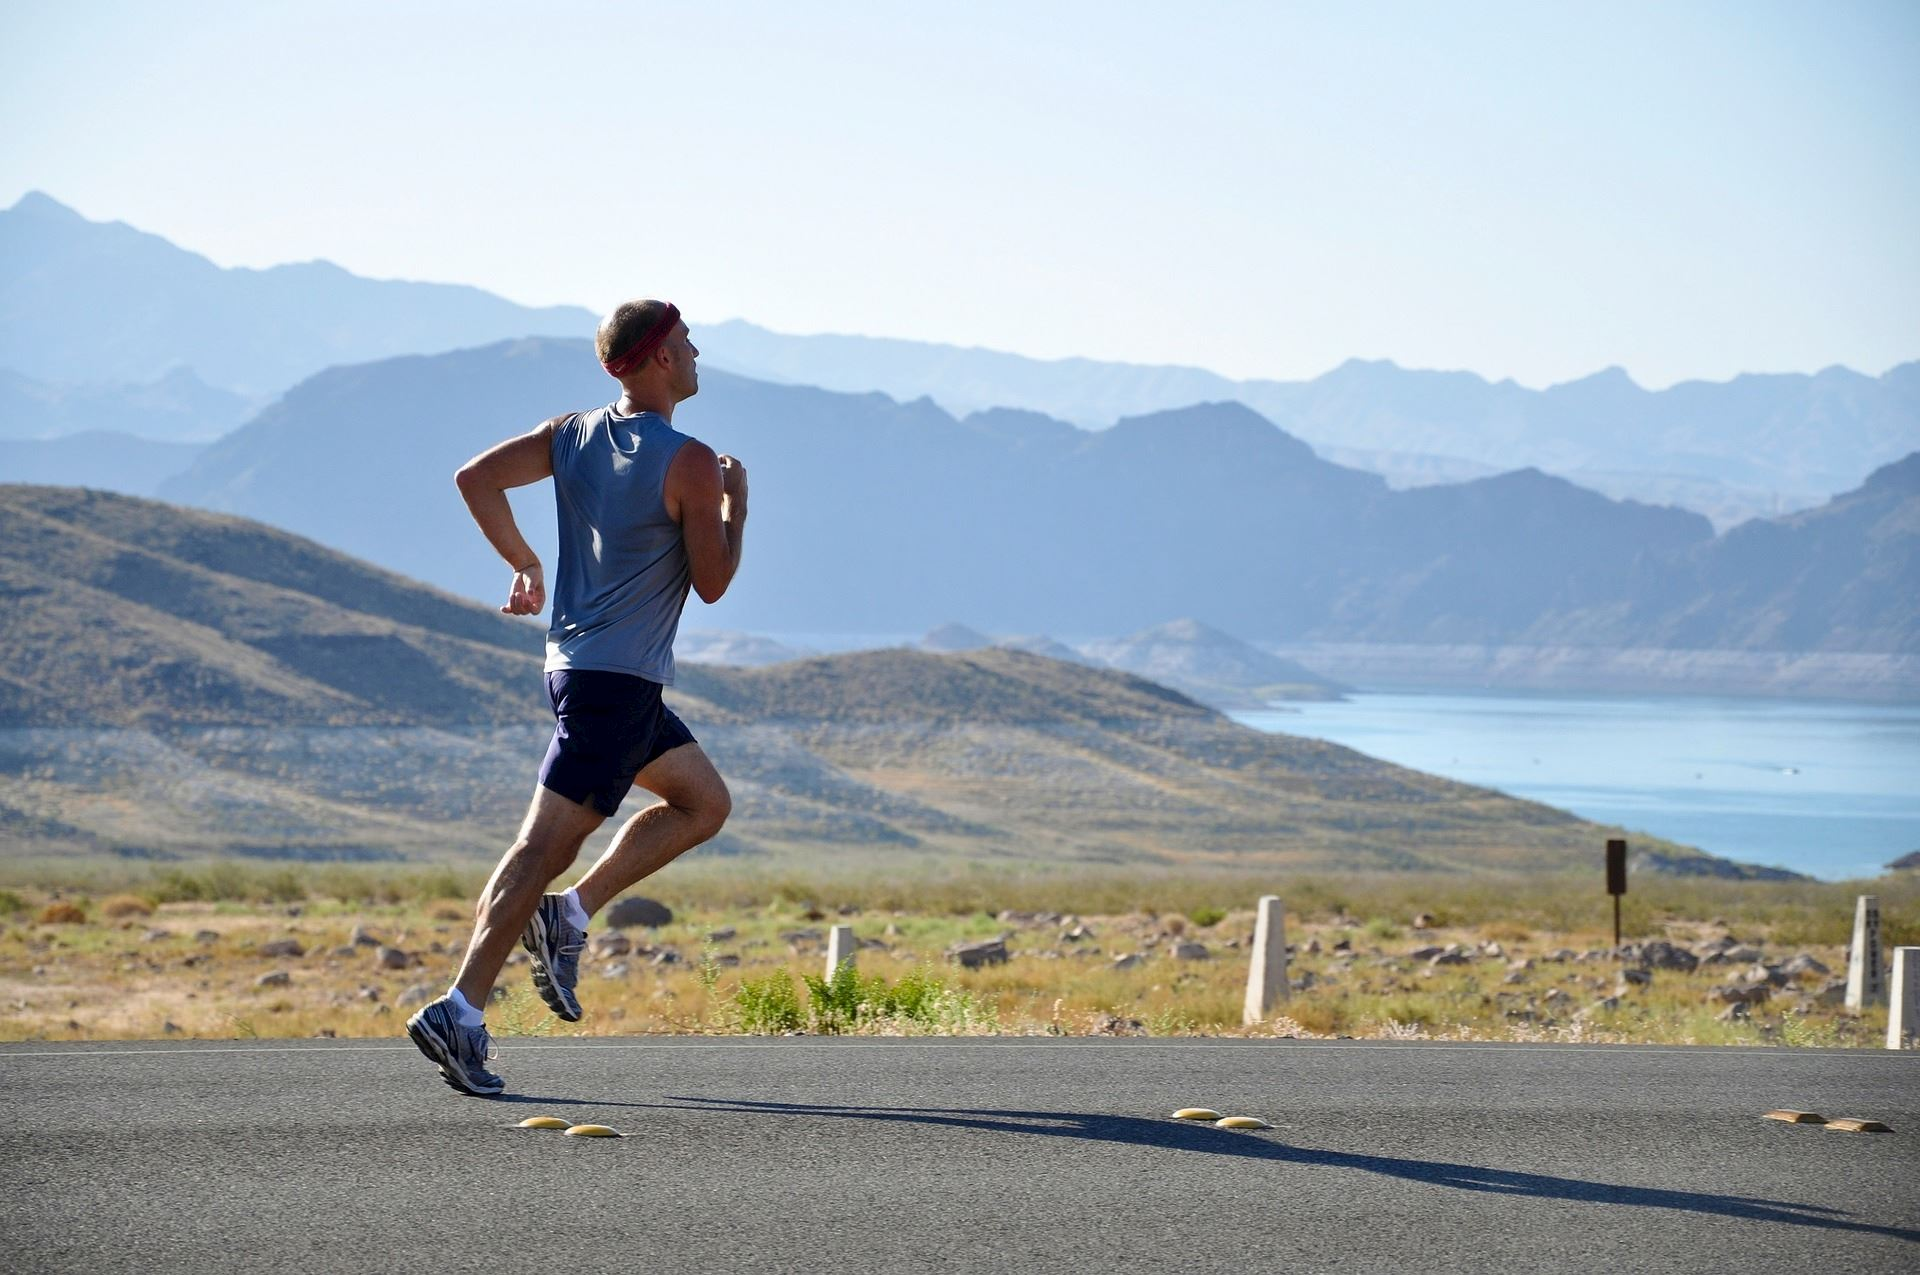 11 Things to Improve Your Endurance When Running | World's Marathons